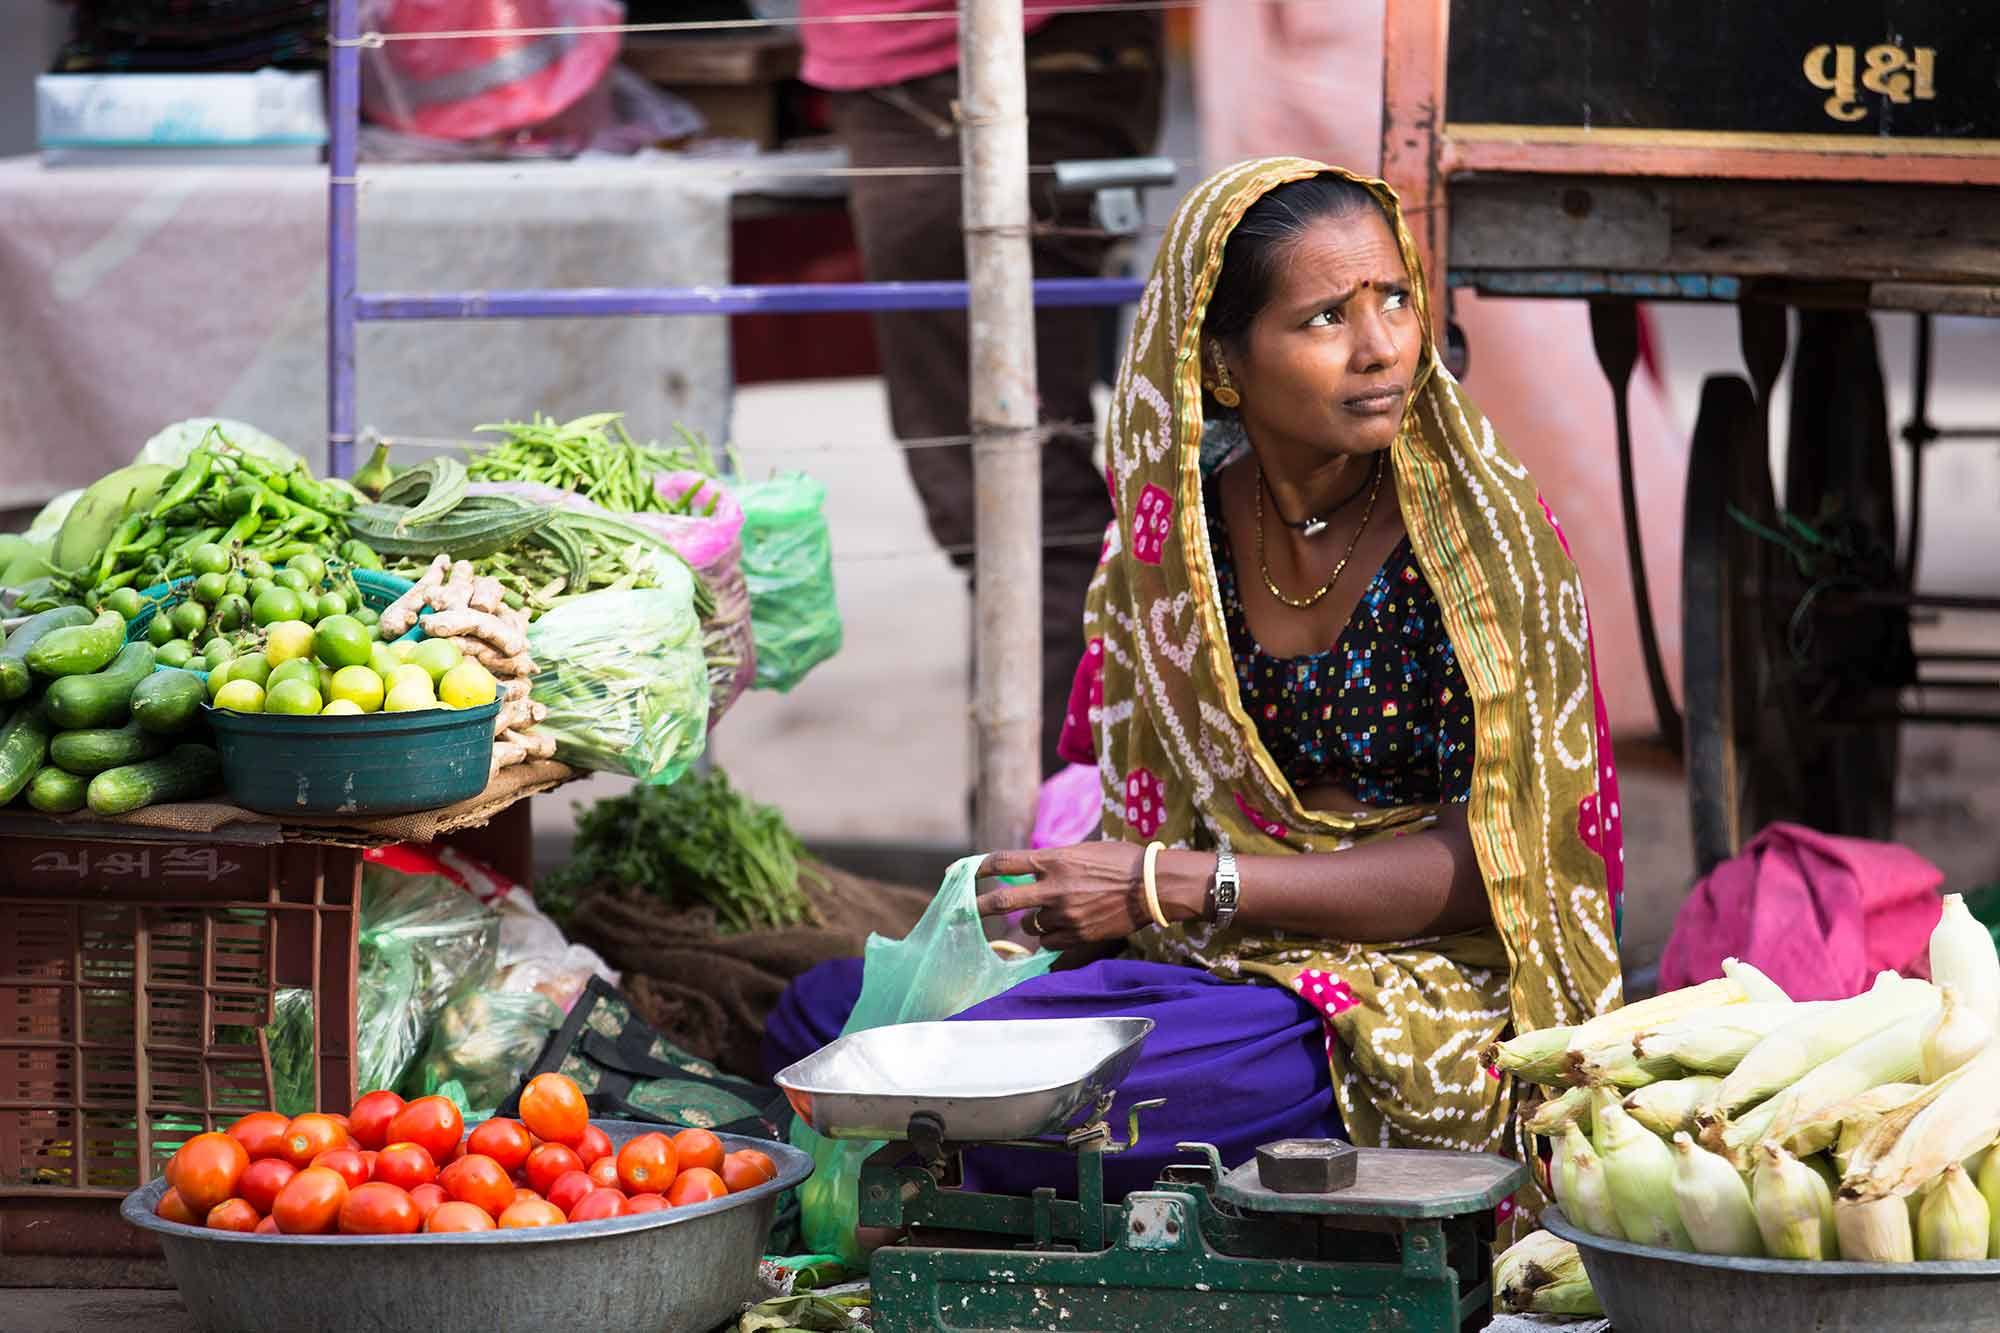 market-woman-bhuj-gujarat-india